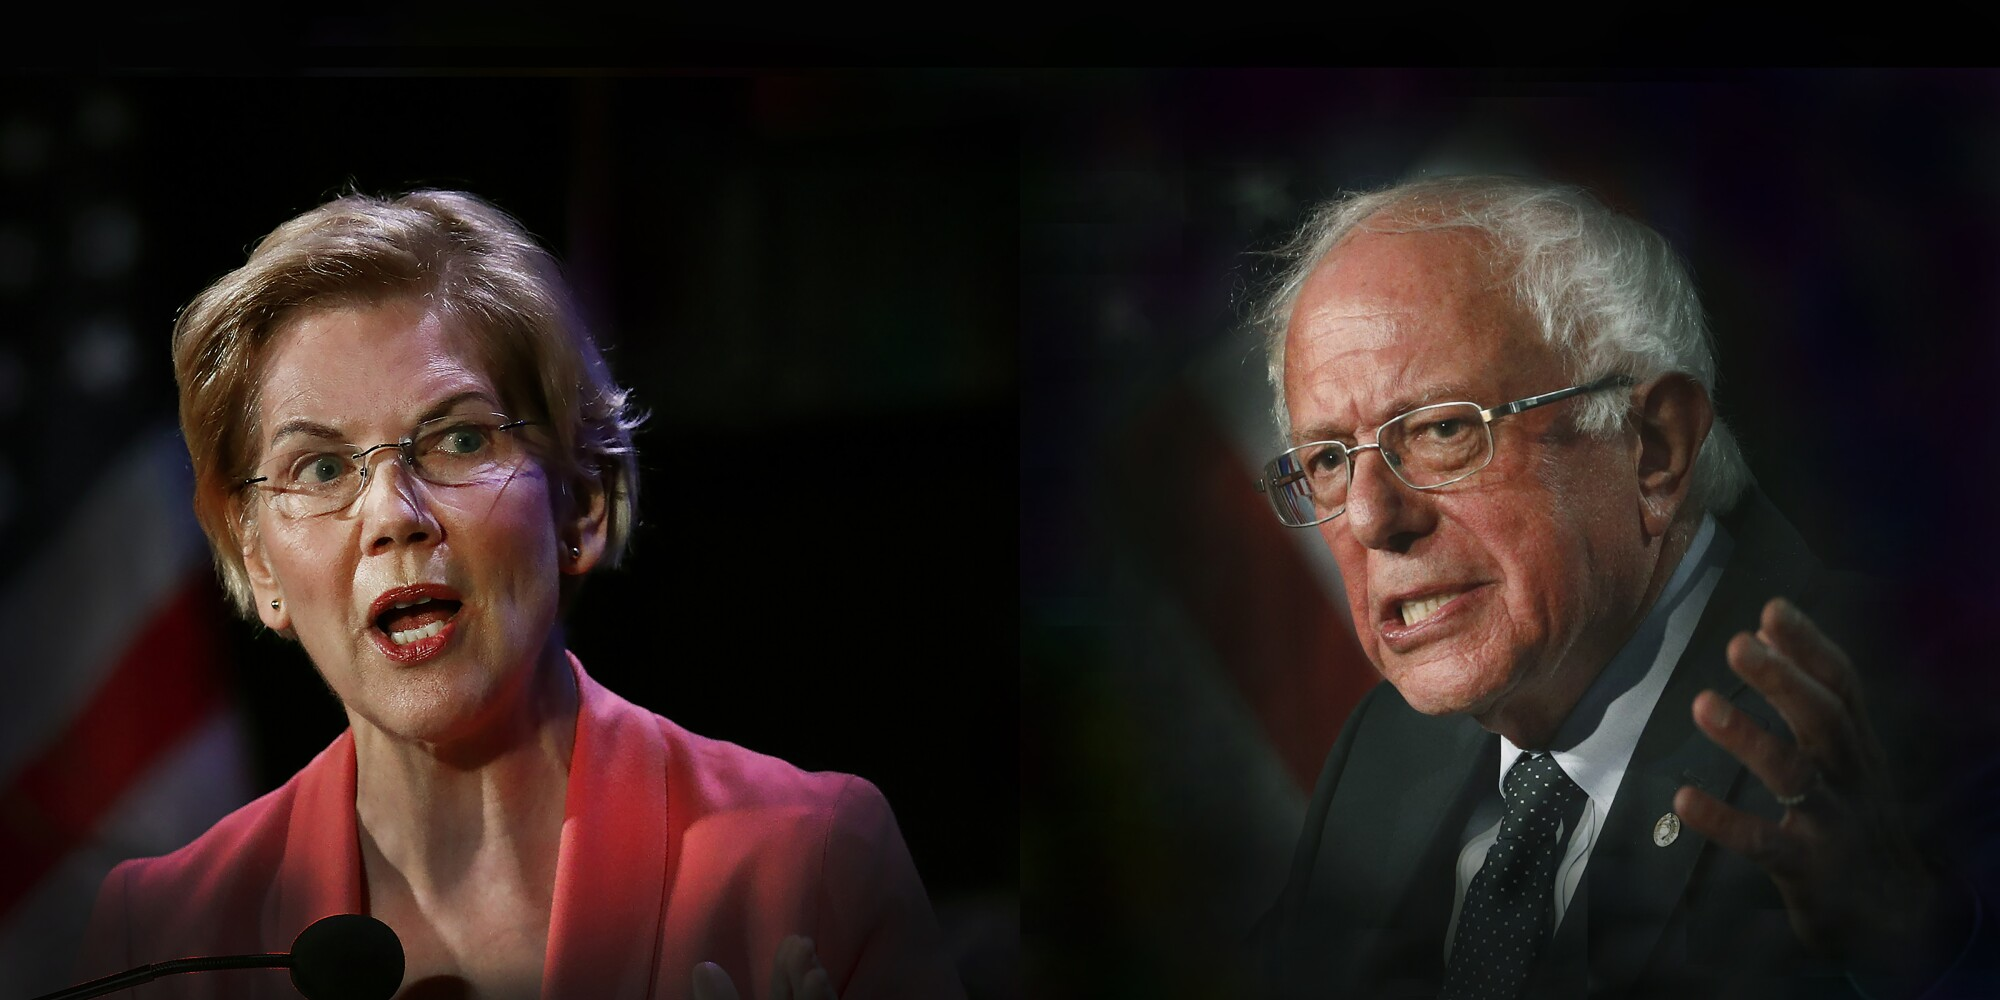 Warren and Sanders